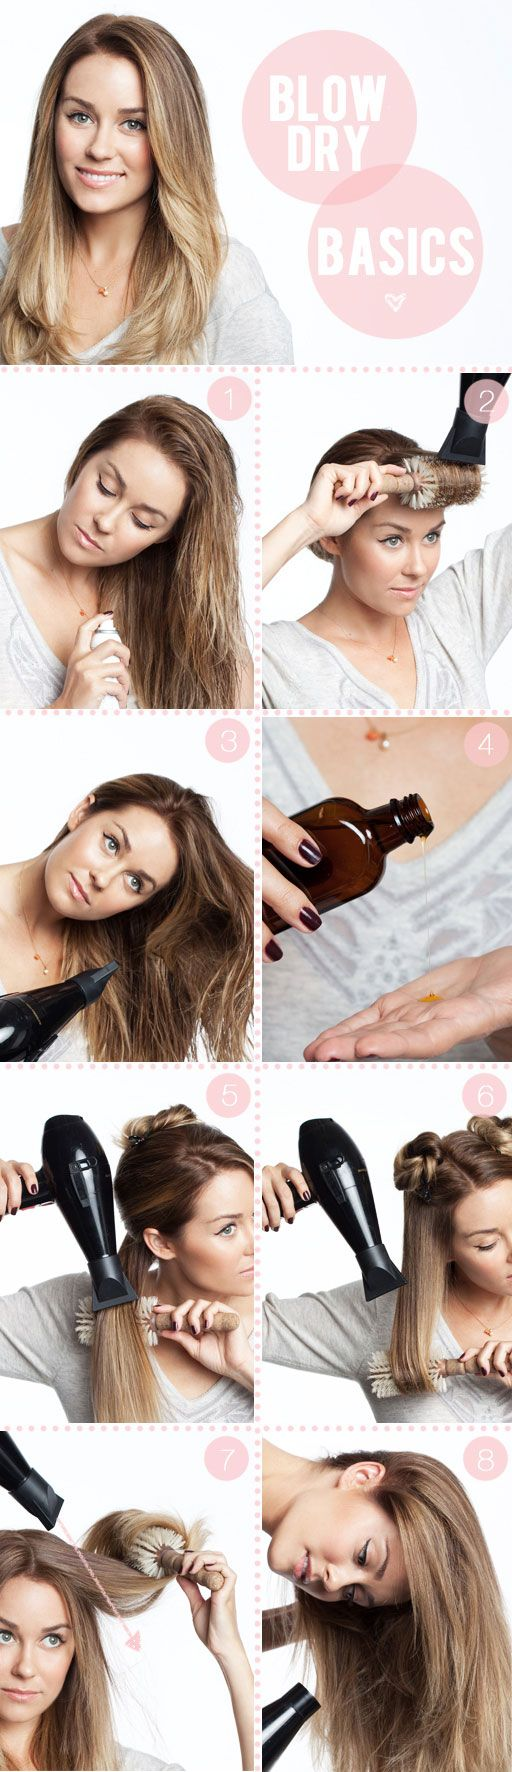 by kristin ess  Lots of requests for a very basic blow out. Here's your step by step! I'll do one for curly hair and one for fine hair as well. These are the basics steps for anyone with wavy and/or thick hair like Lauren's.    Tools: Blow dryer with the nozzle, leave-in conditioner or detangler, protective serum or frizz taming serum, medium to large round brush, clips.